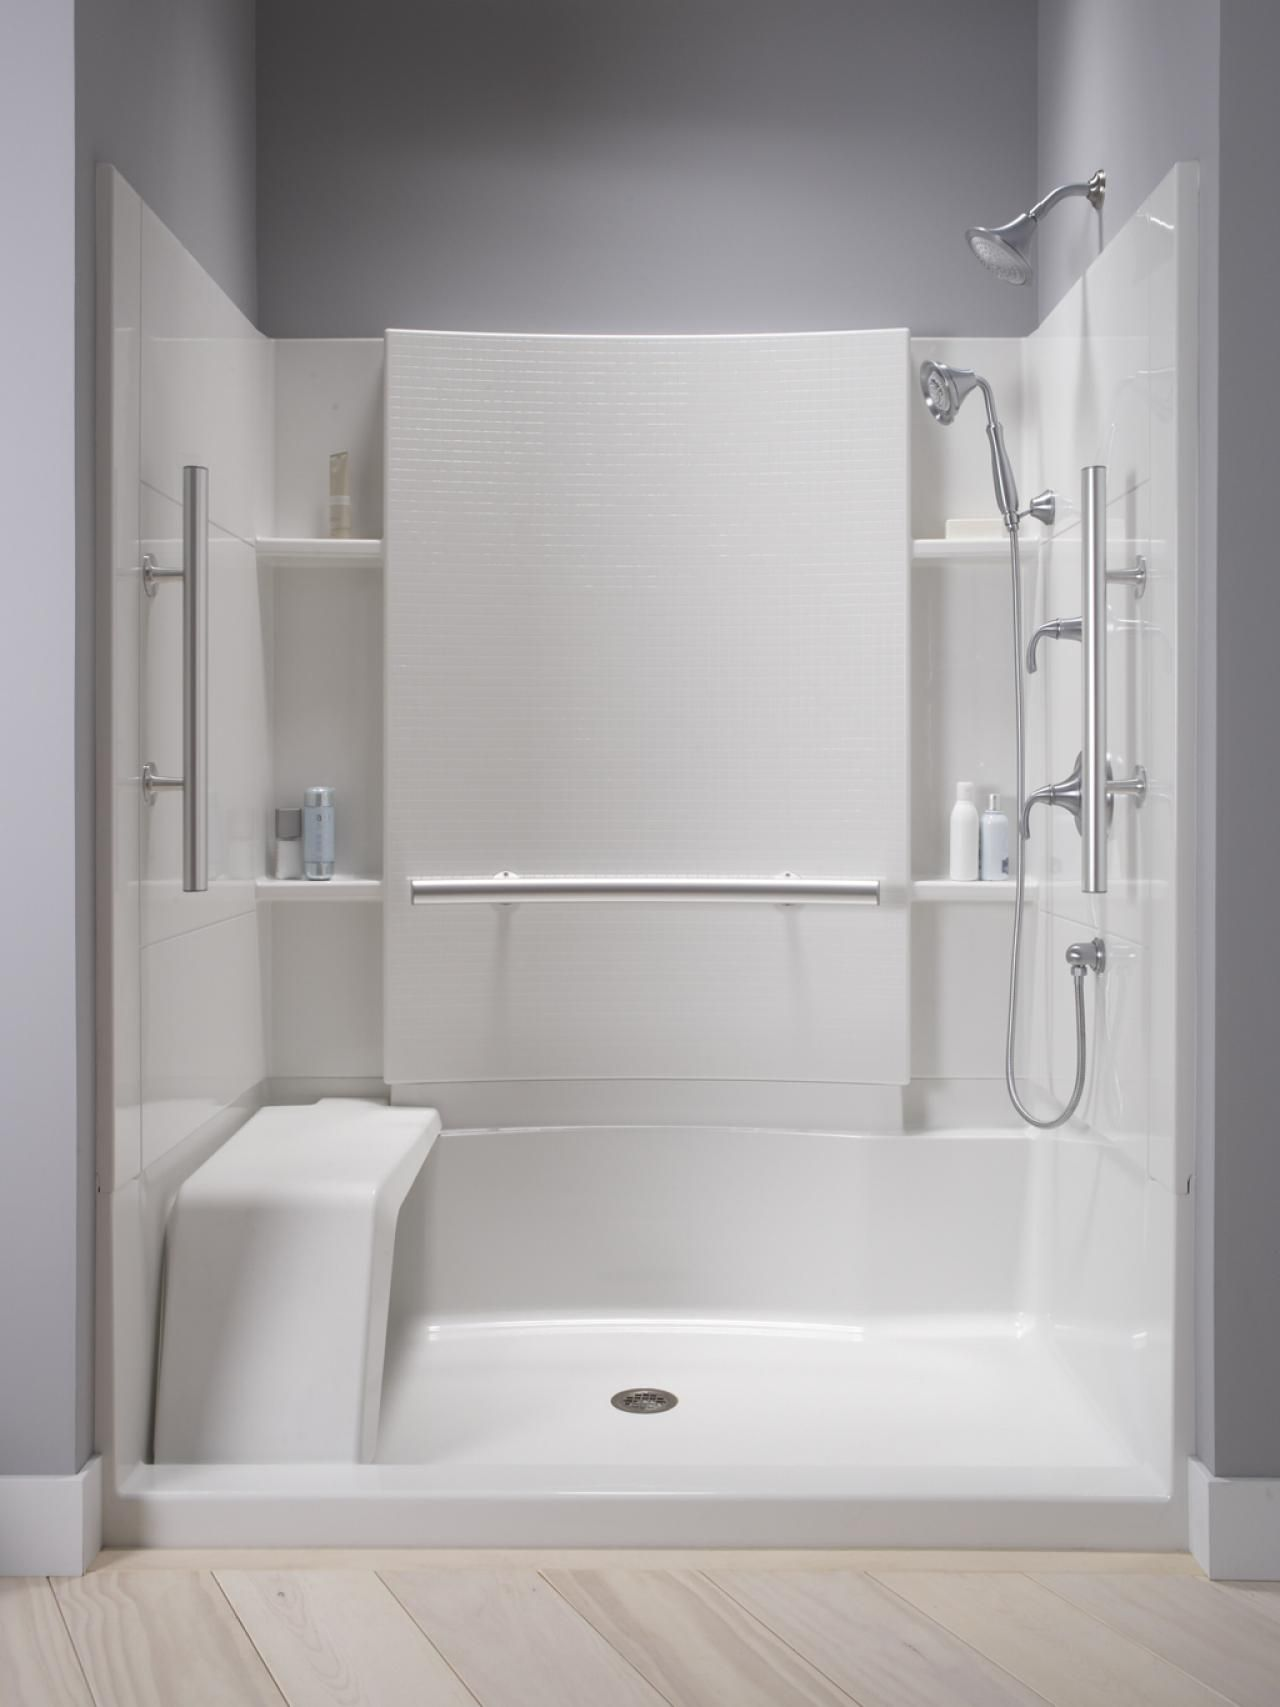 Bathroom Shower Designs | Bathrooms & Closets | Pinterest | Bath ...